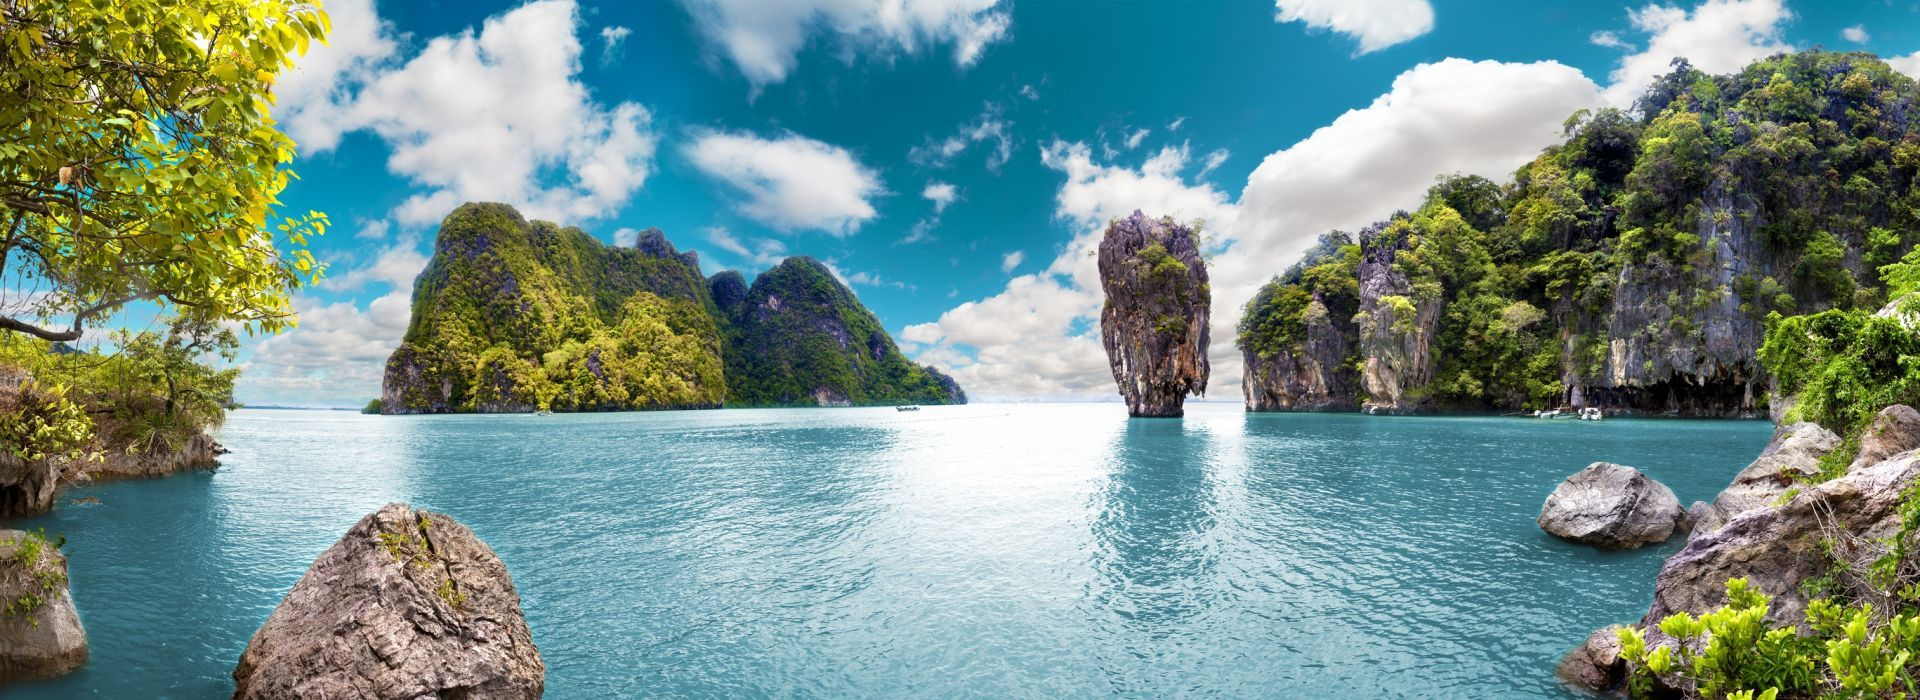 Boat tours, water sports and marine wildlife in Krabi